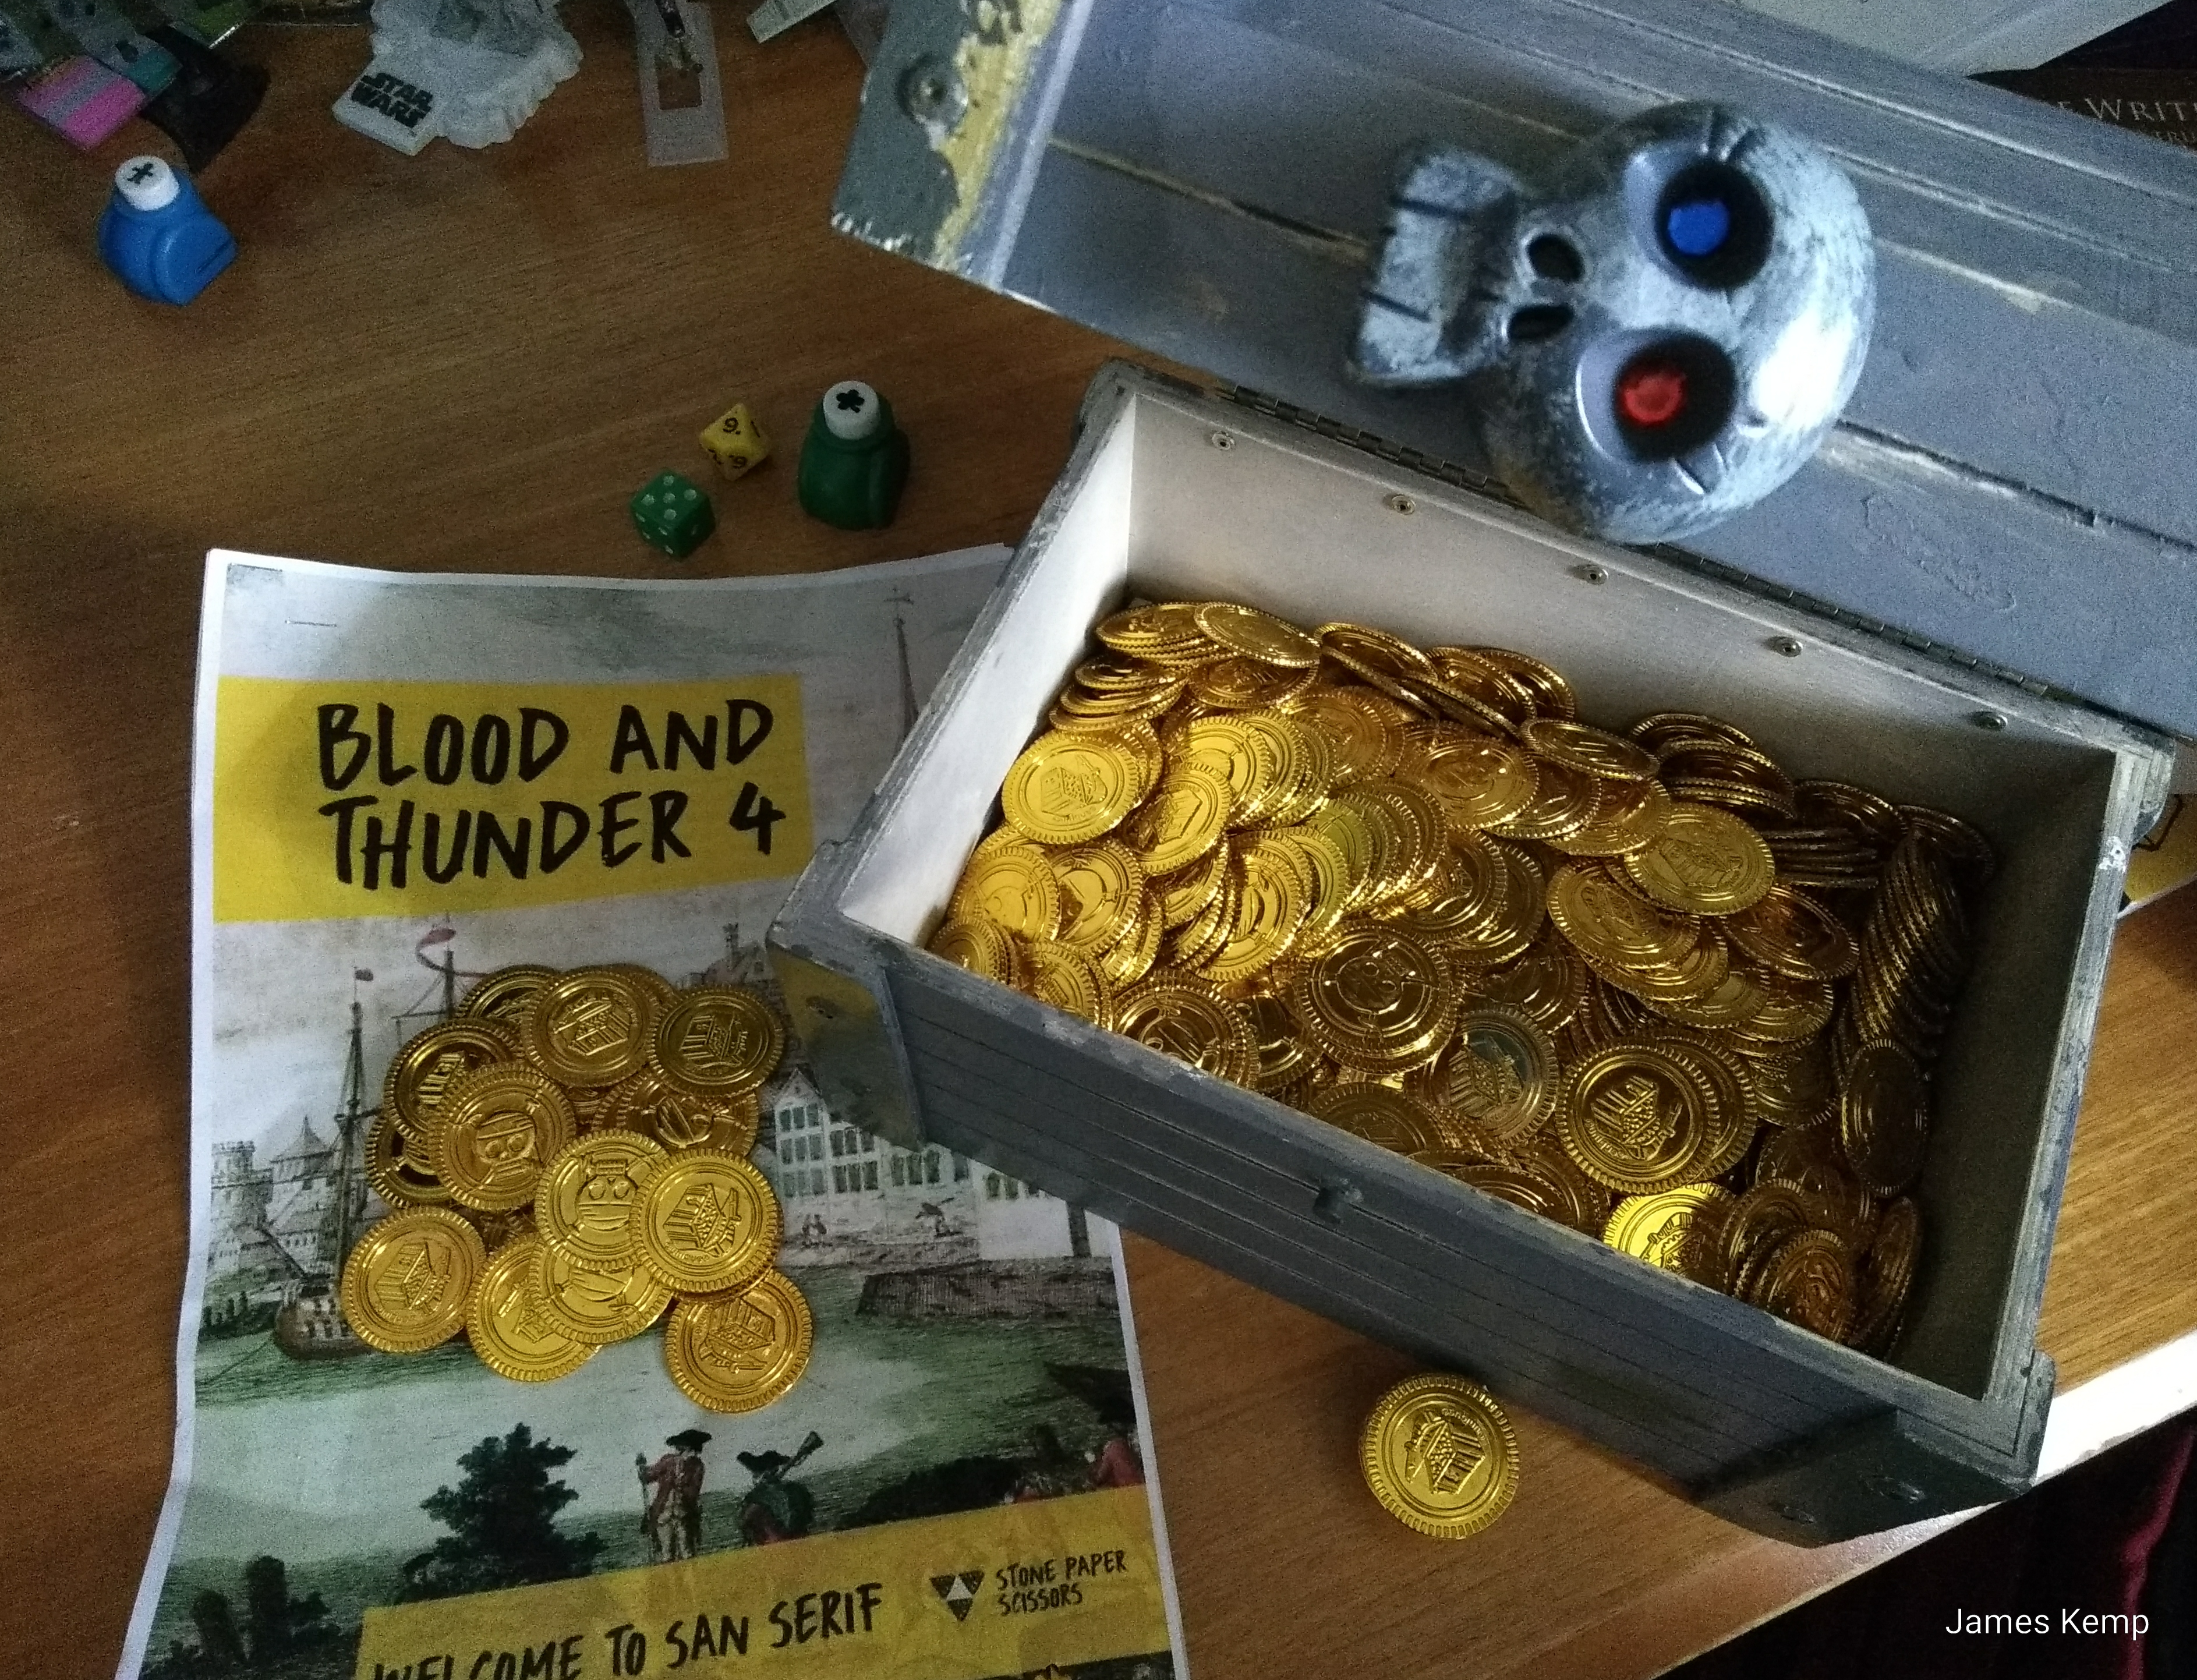 Briefing for Blood and Thunder 4 megagame and a wooden treasure chest filled with gold coins